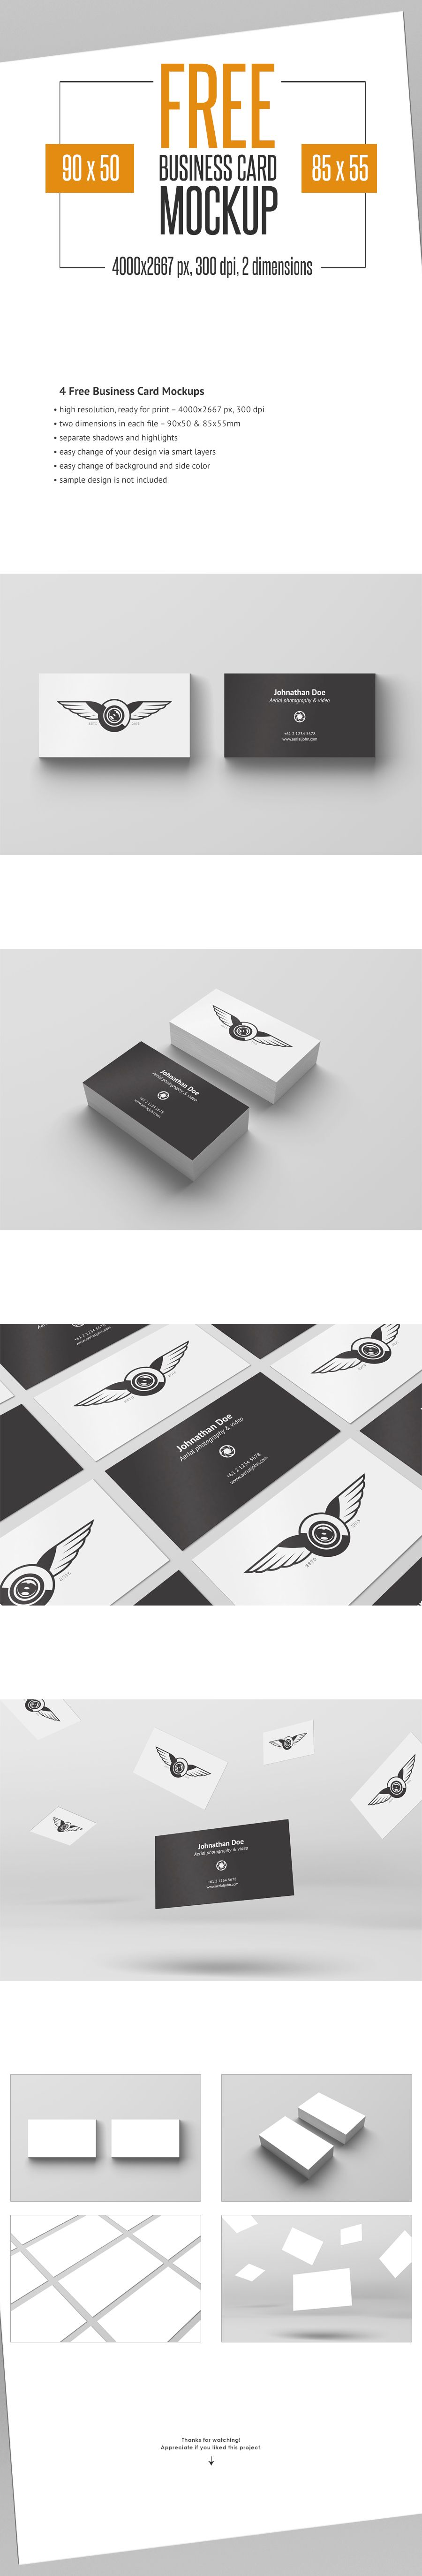 4 Free Business Card Mockup on Behance … | Pinteres…